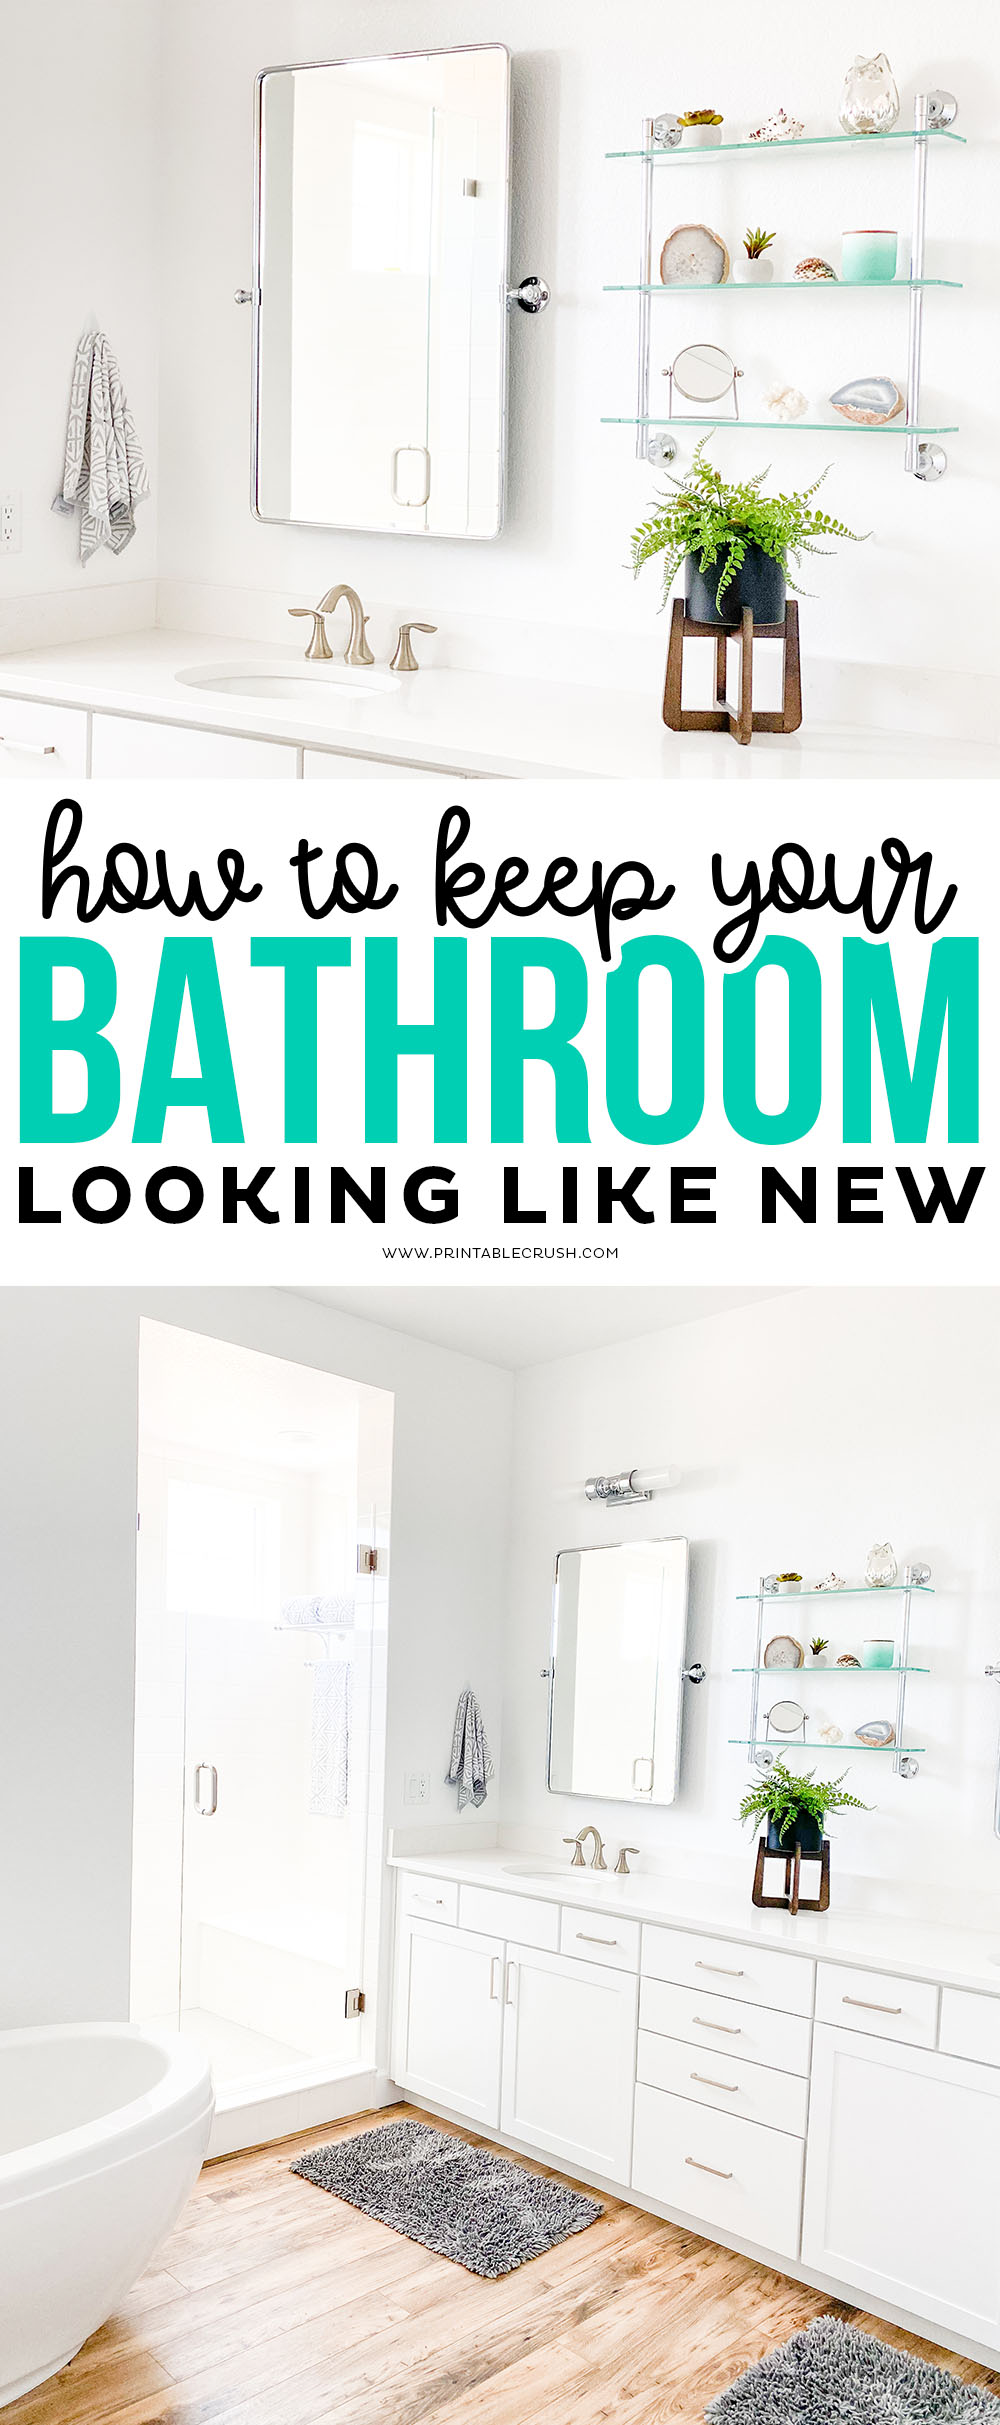 How to Keep a Clean Bathroom - Printable Crush #cleanbathroom #cleaningtips #homedecor #bathroomdecor #cleanbathroom via @printablecrush